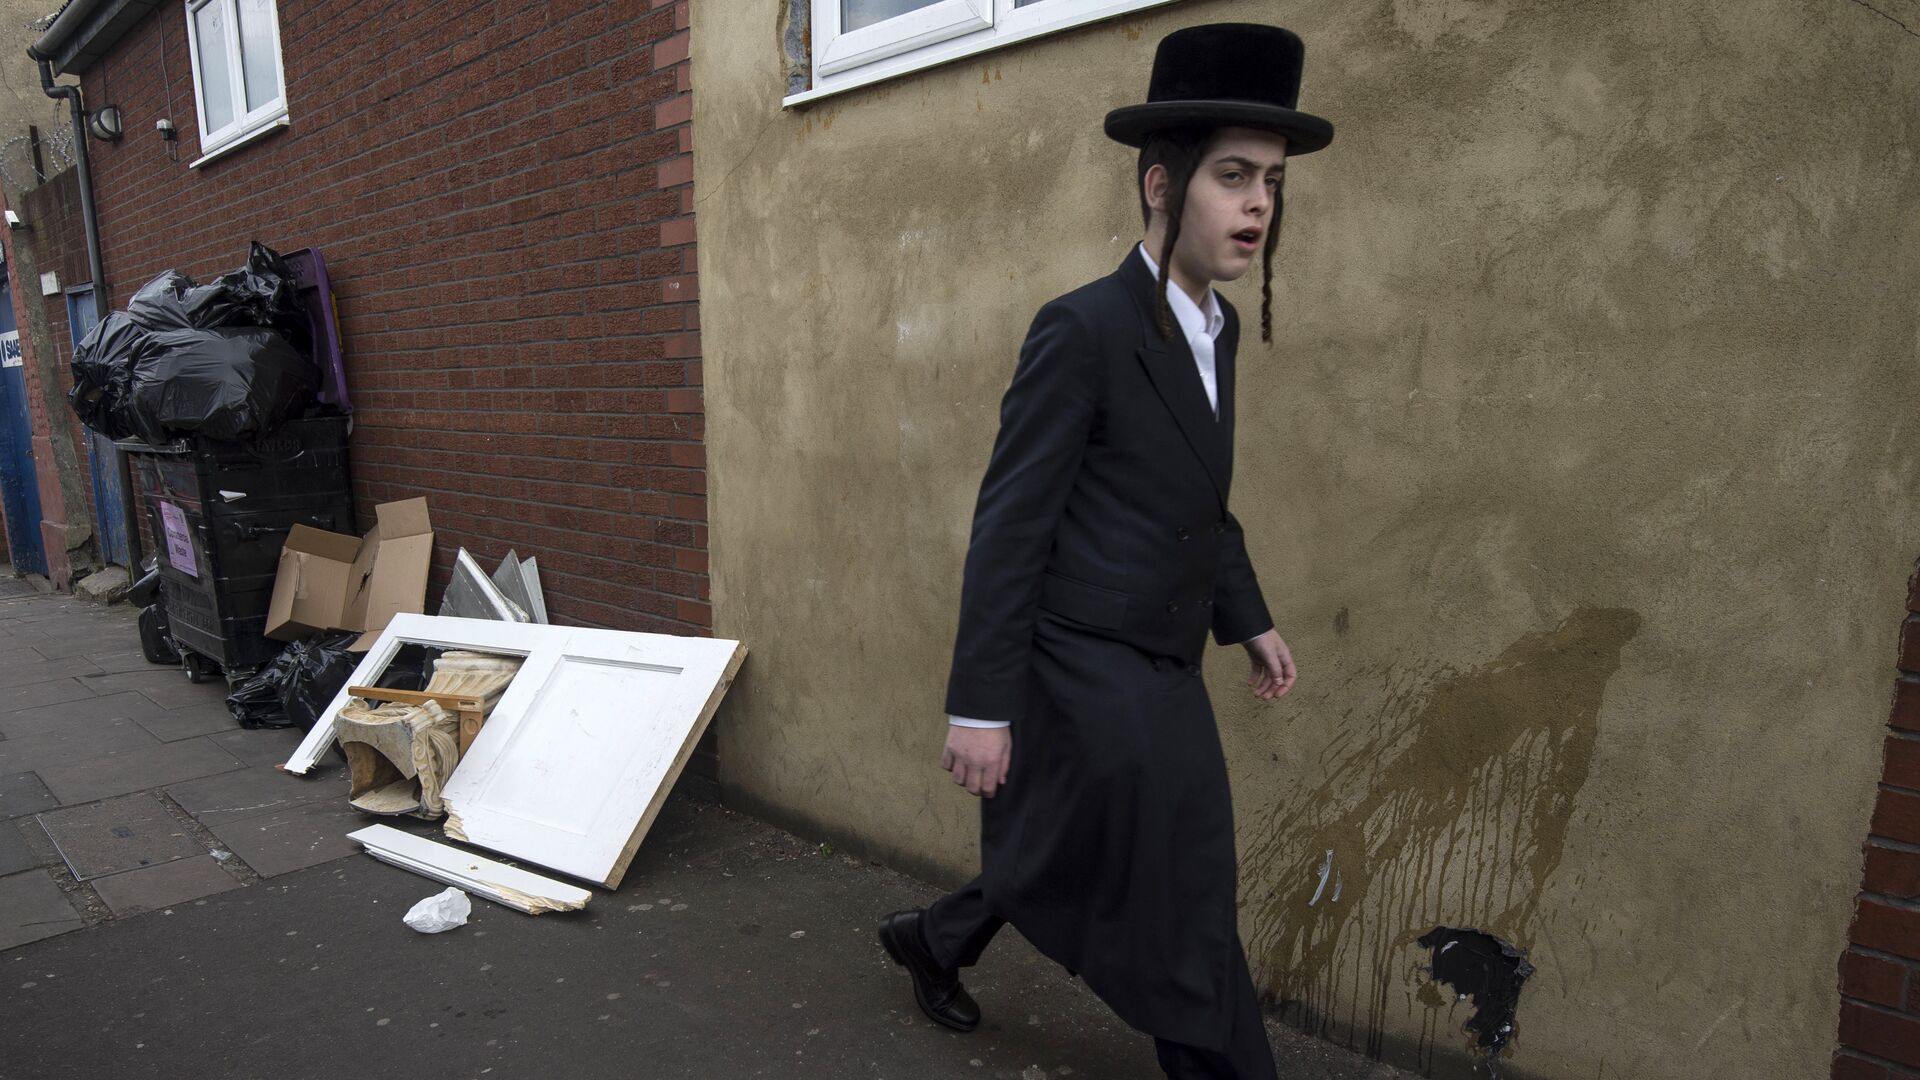 An Orthodox jew walks past a damaged door belonging to the Ahavas Torah synagogue in the Stamford Hill area of north London on March 22, 2015 - Sputnik International, 1920, 09.09.2021